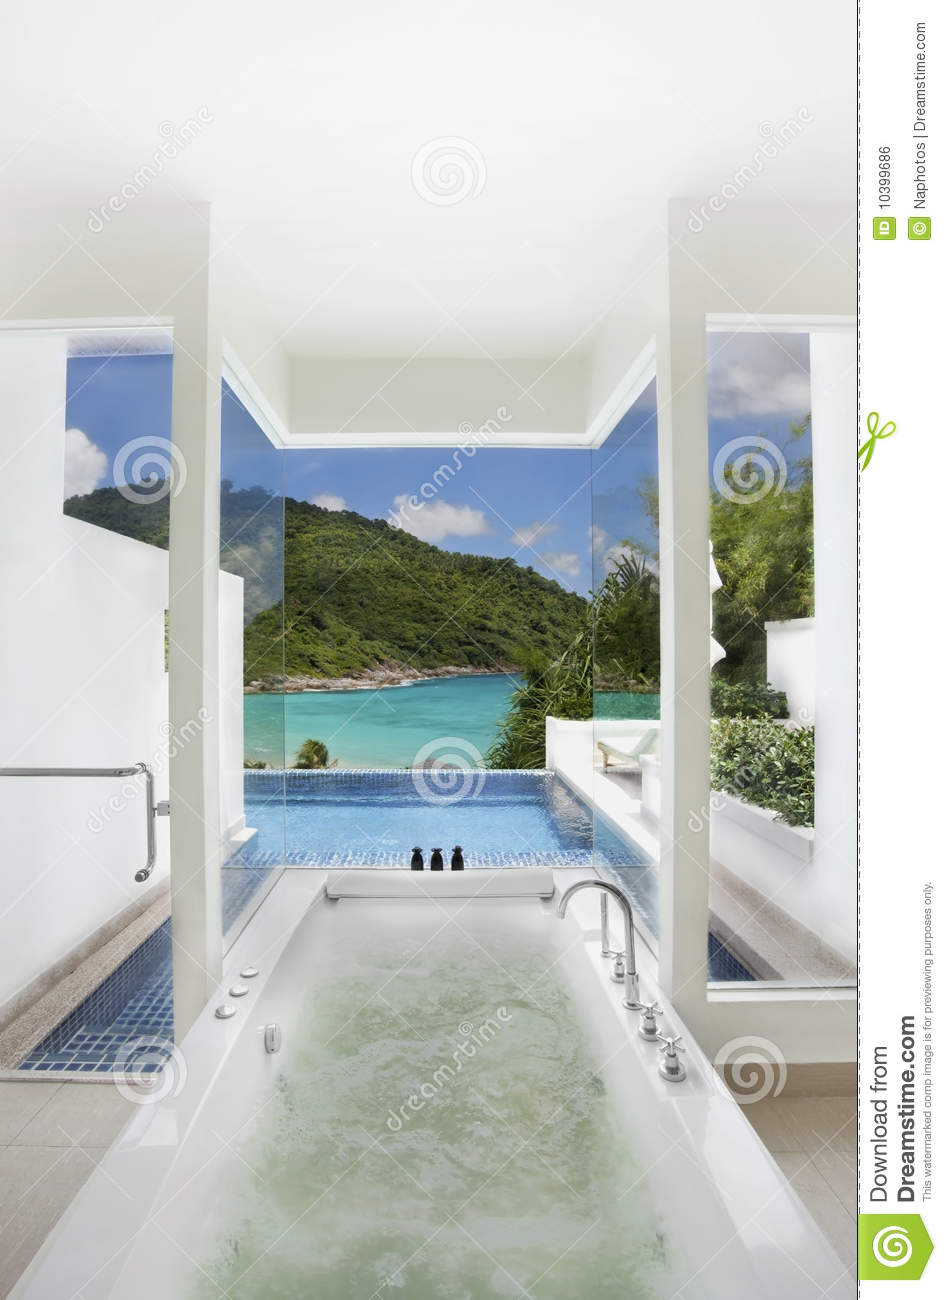 Luxury bathroom closes swimming pool and sea view stock for Small pool house with bathroom